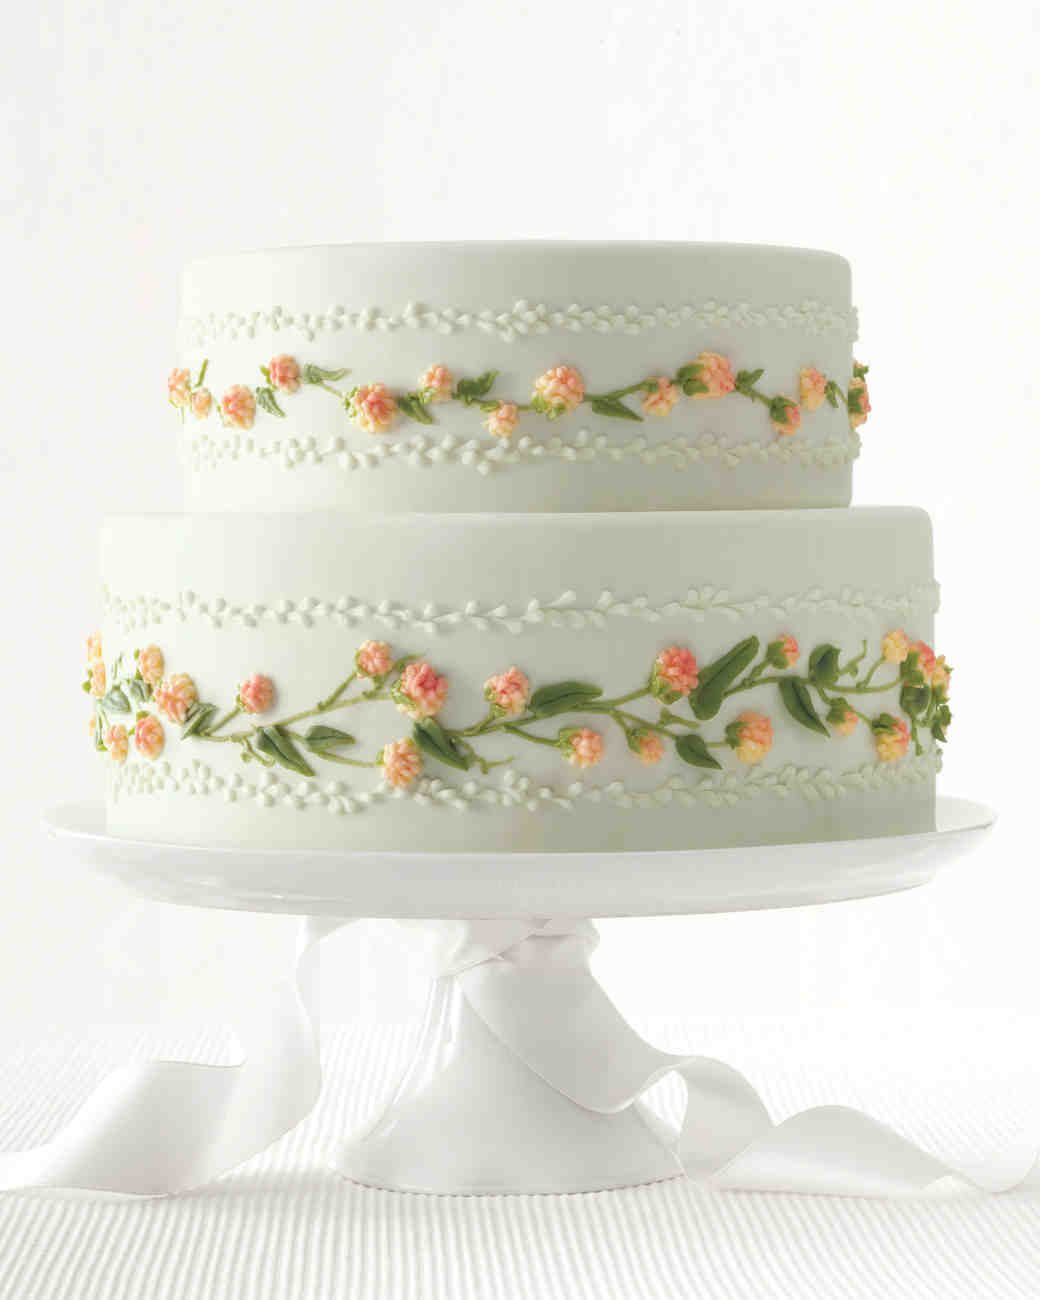 martha stewart almond wedding cake recipe new takes on traditional wedding cake flavors martha 17187